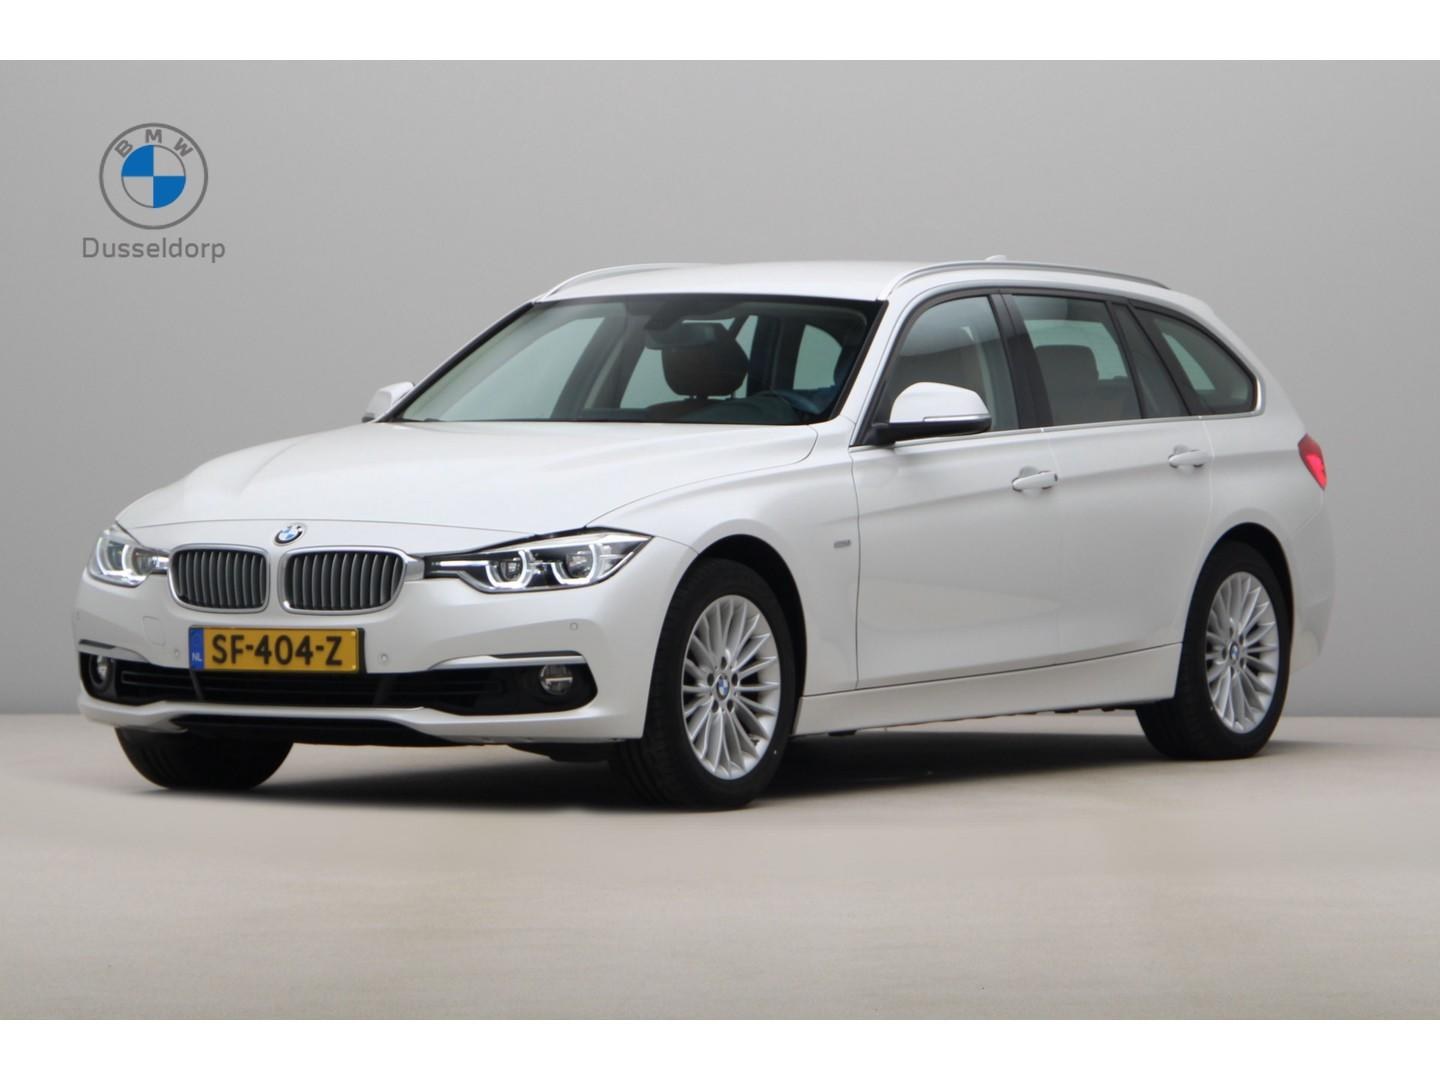 Bmw 3 serie Touring 318i edition luxury line purity executive